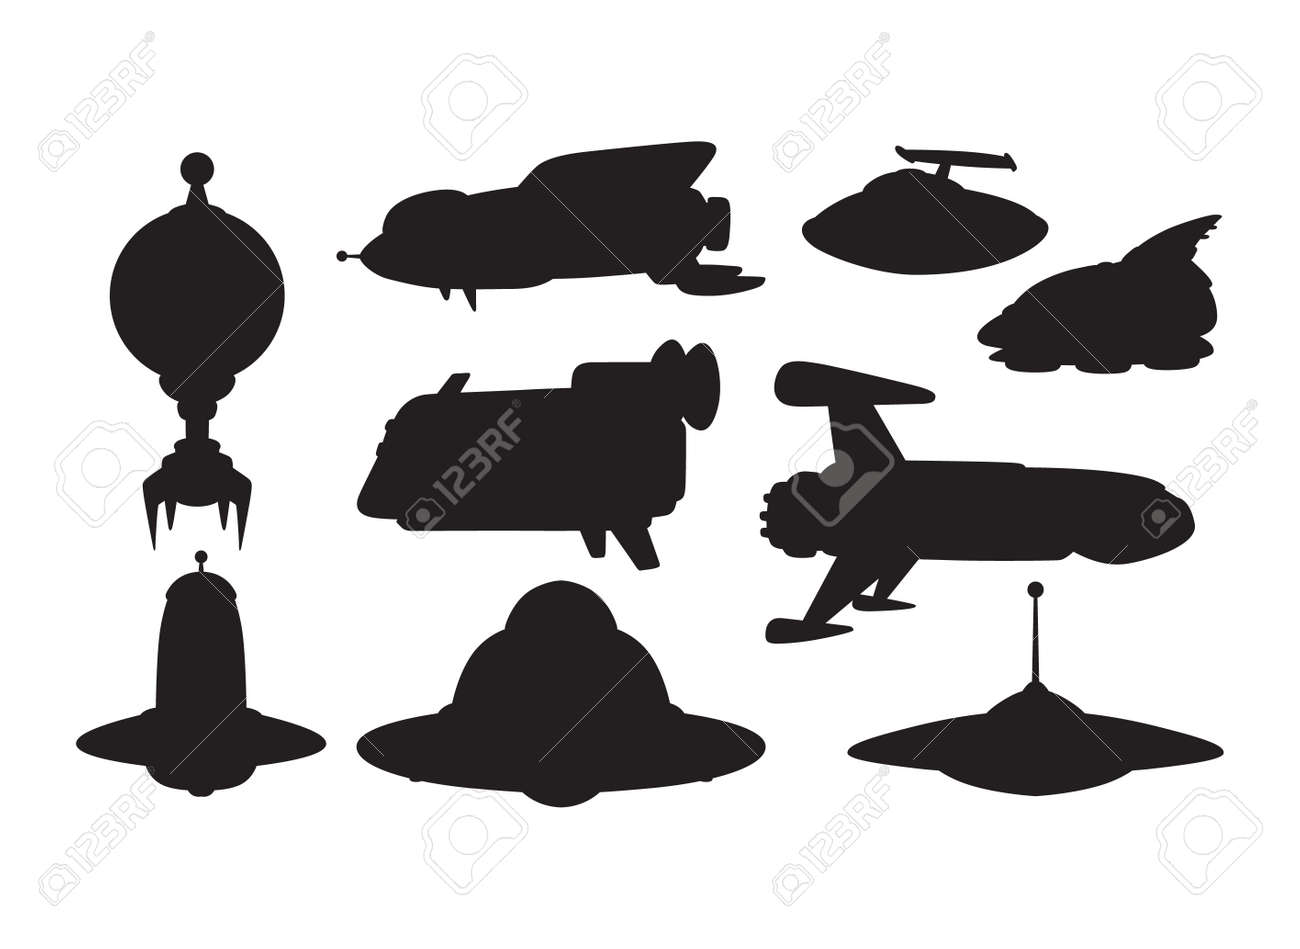 big collection of ufo crafts and space stations silhouette vector